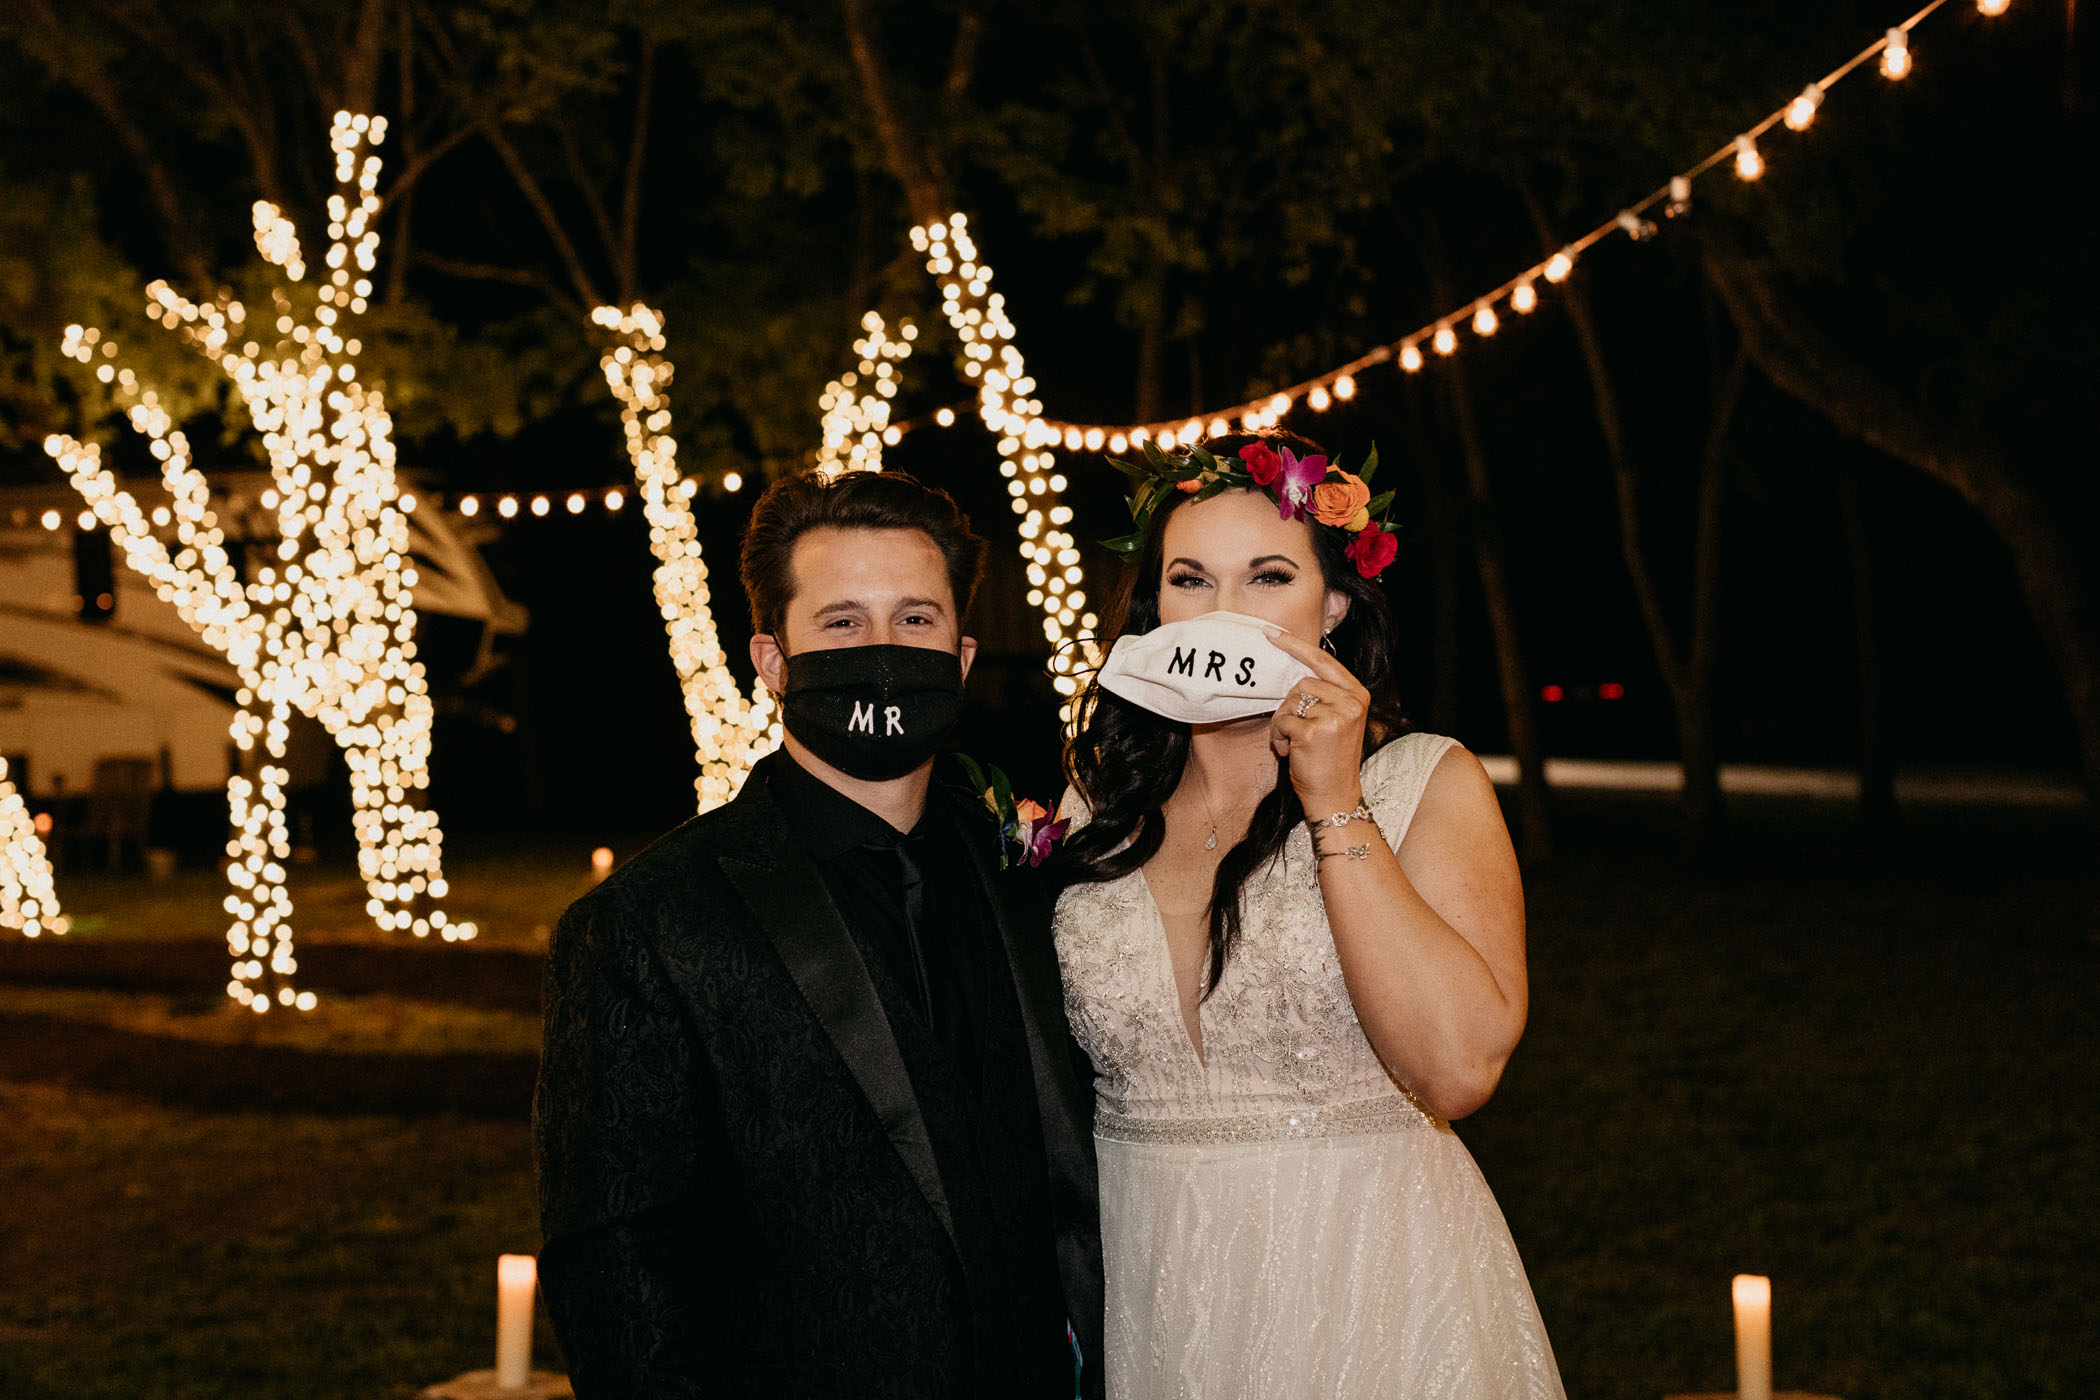 Coronavirus wedding couple making light of the situation at their intimate elopement